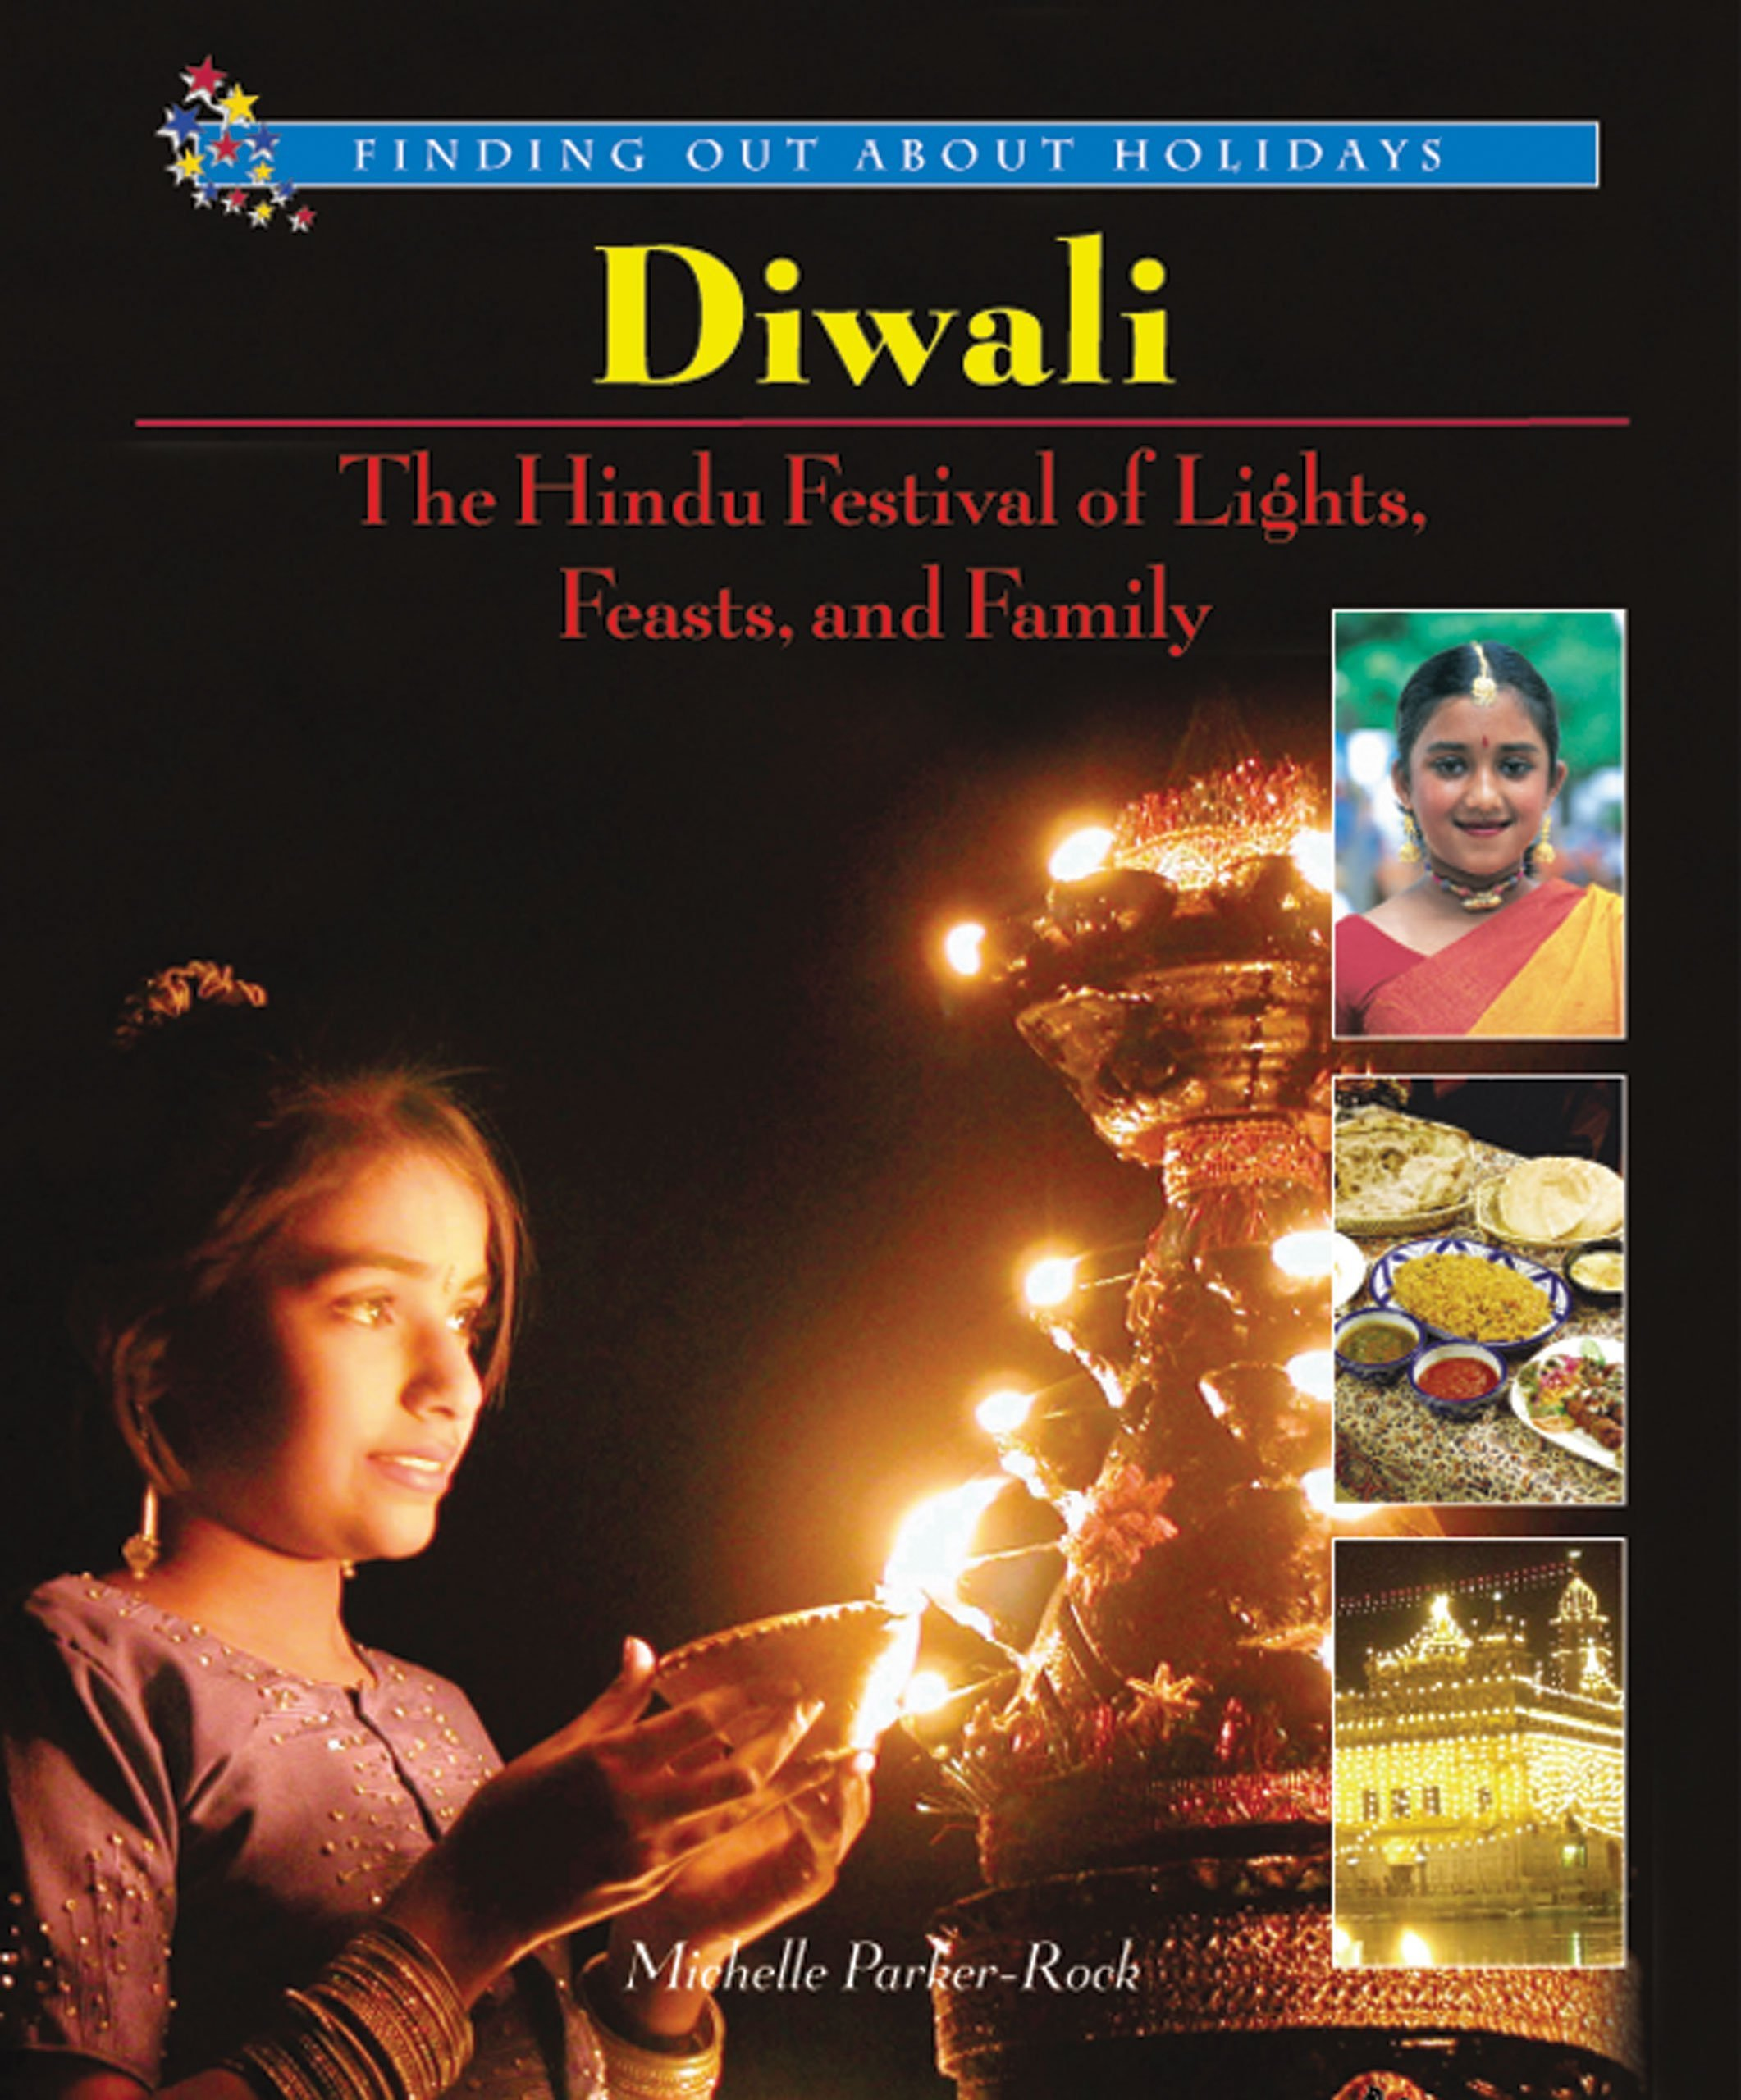 Diwali: The Hindu Festival of Lights, Feasts, and Family (Finding Out About Holidays)